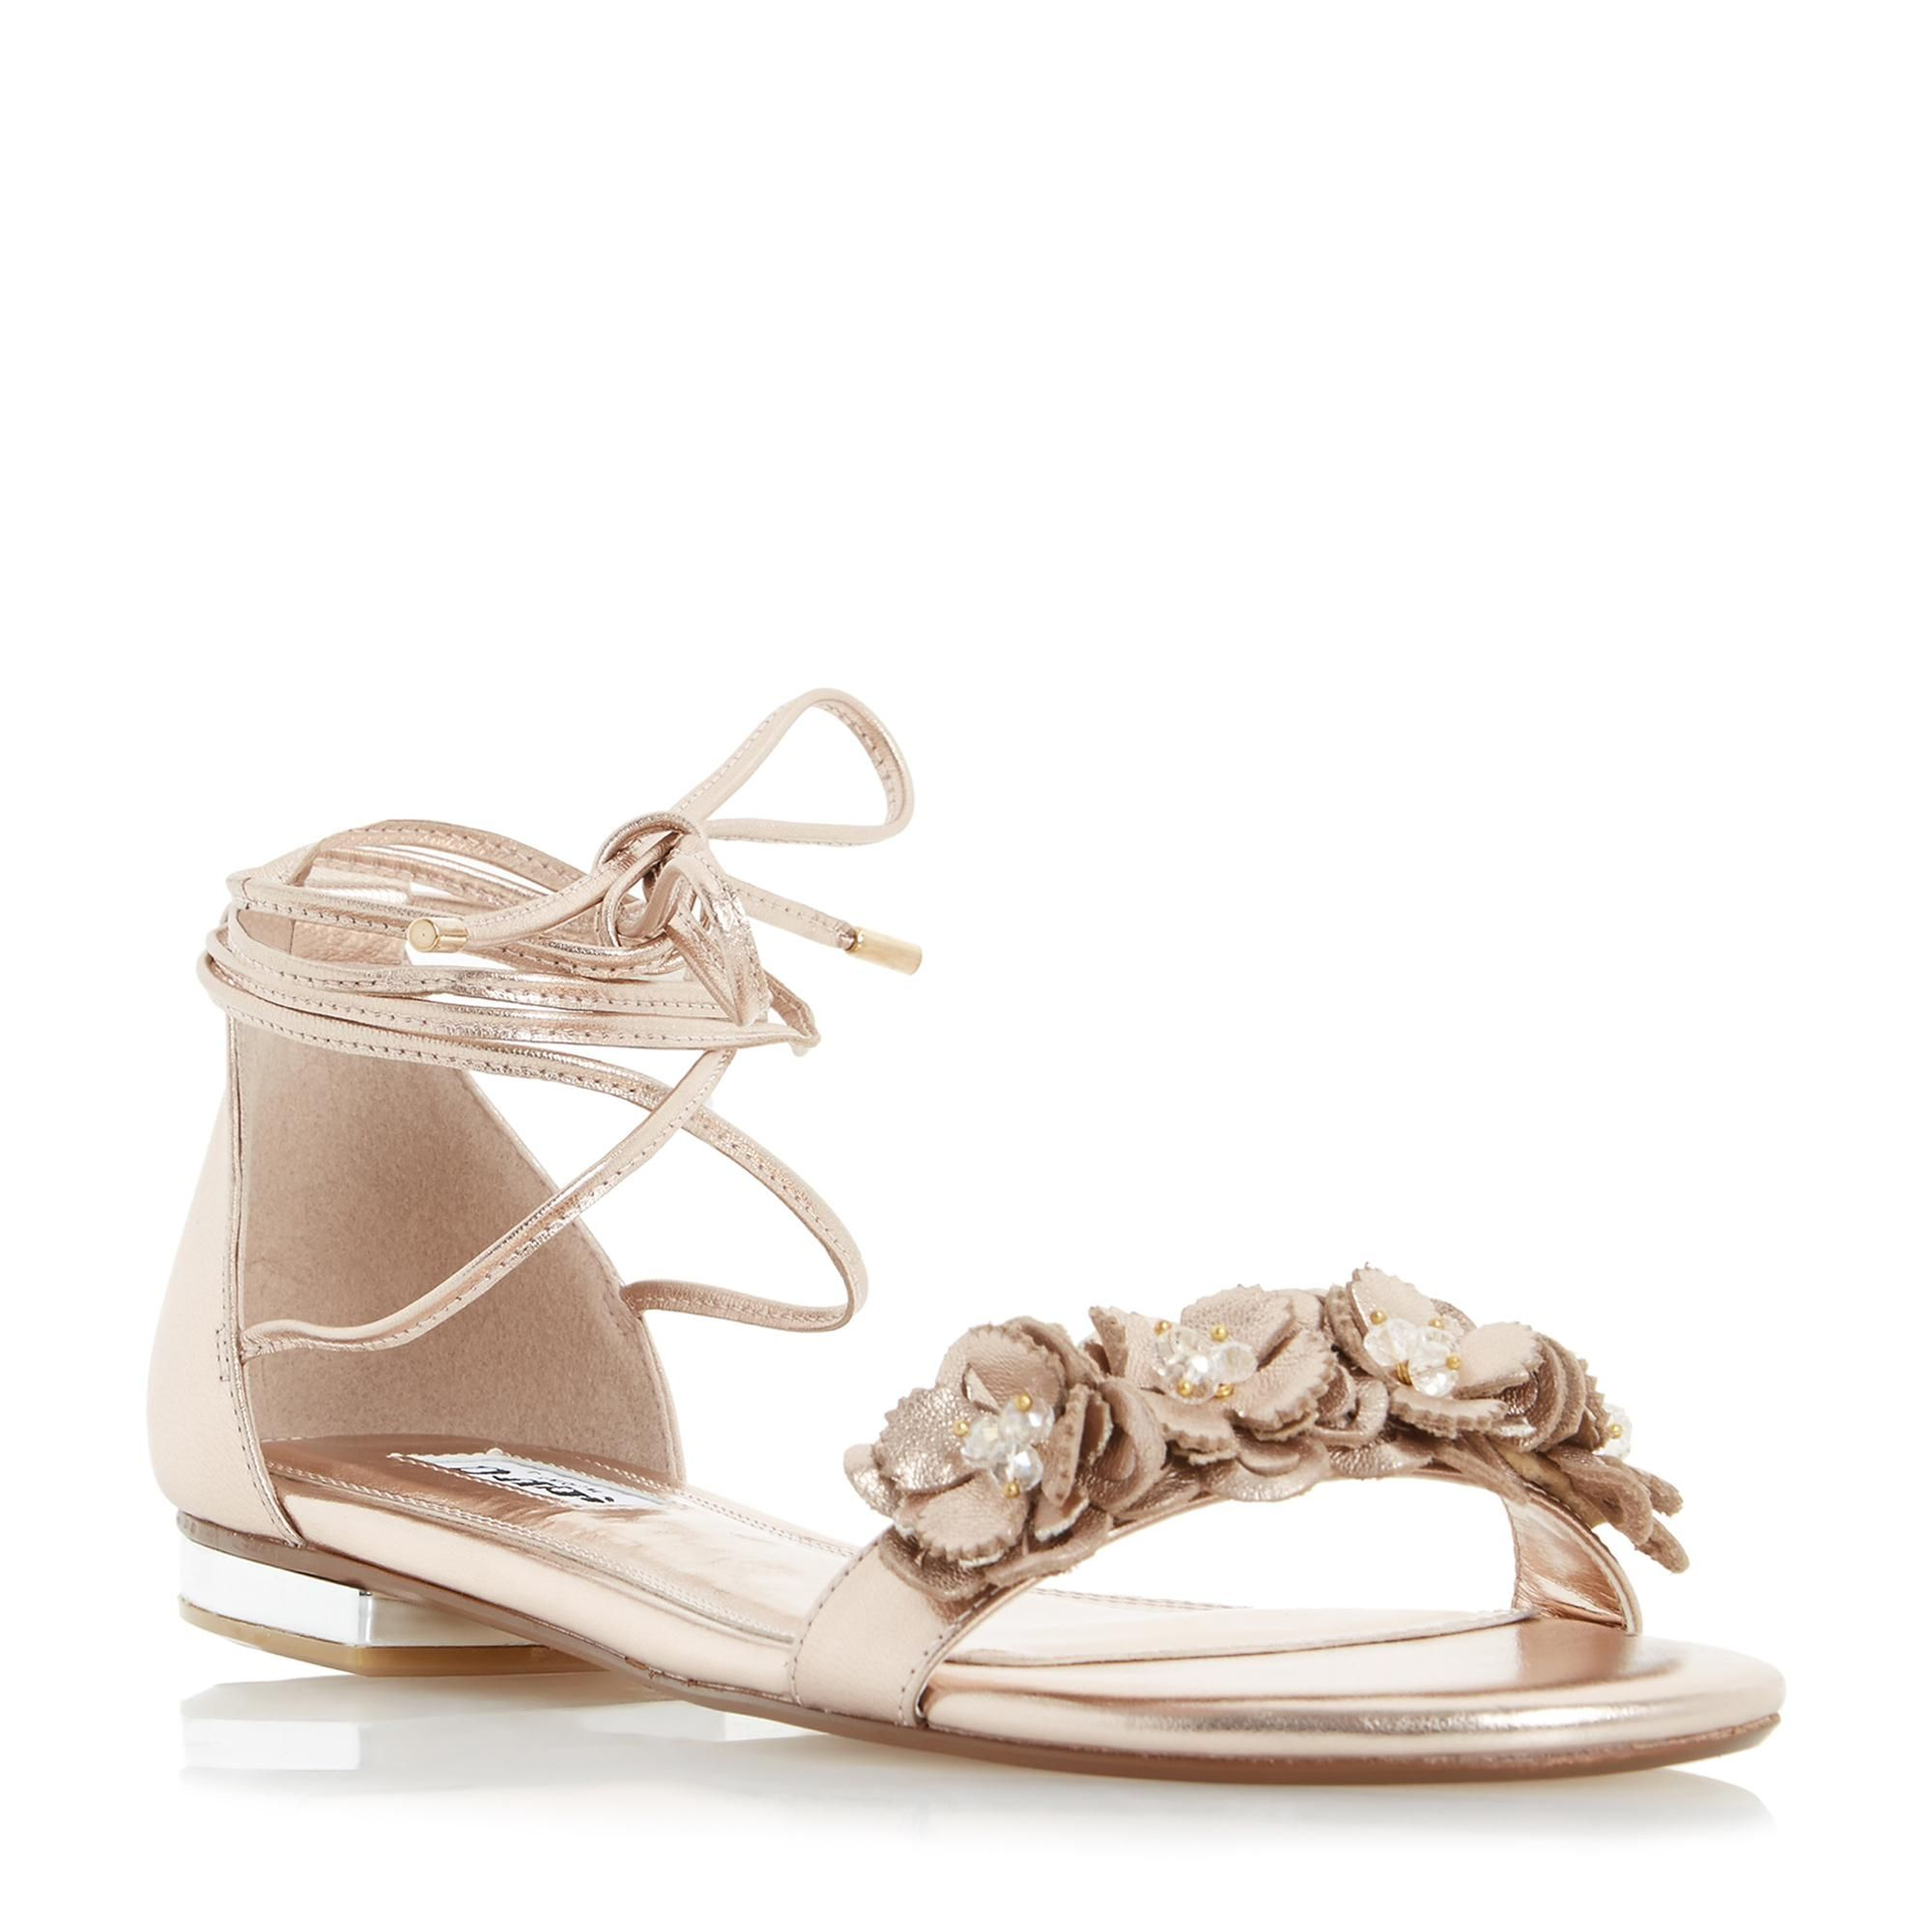 DUNE LADIES NIGELLA - Ghillie Lace Up Flower Trim Flat Sandal - rose gold |  Dune